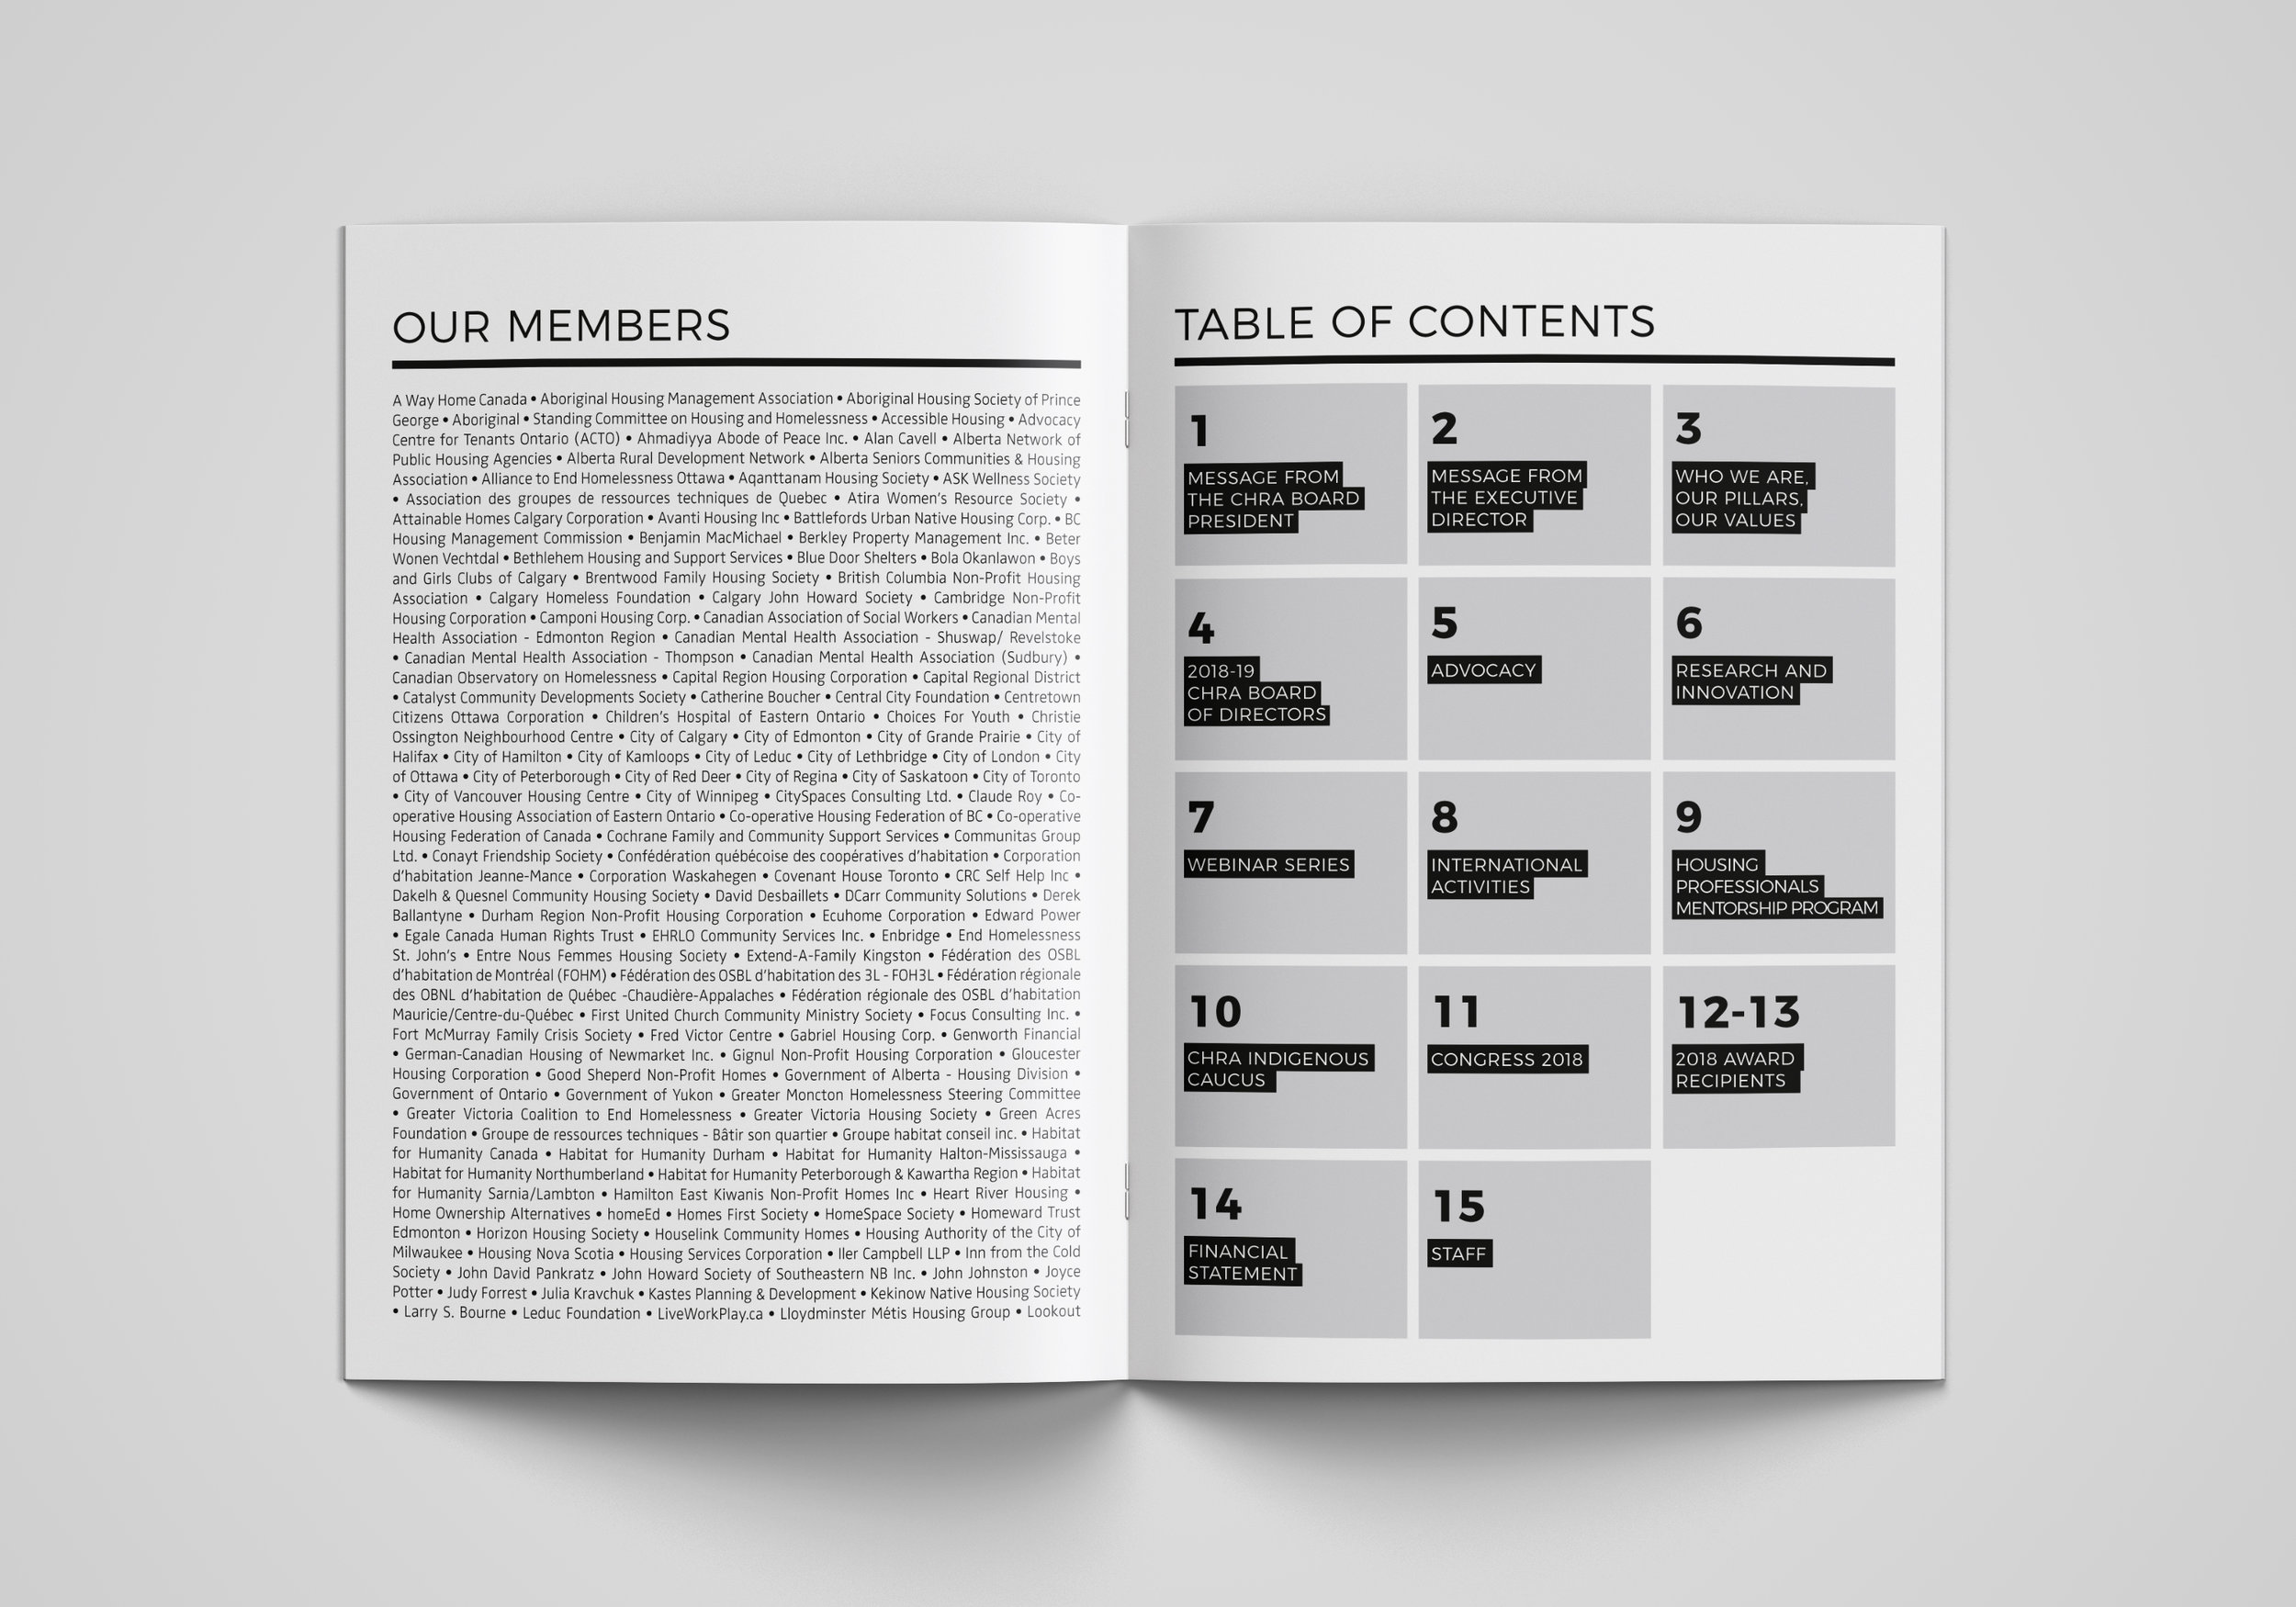 2018 Annual Report Membership and Table of Contents.